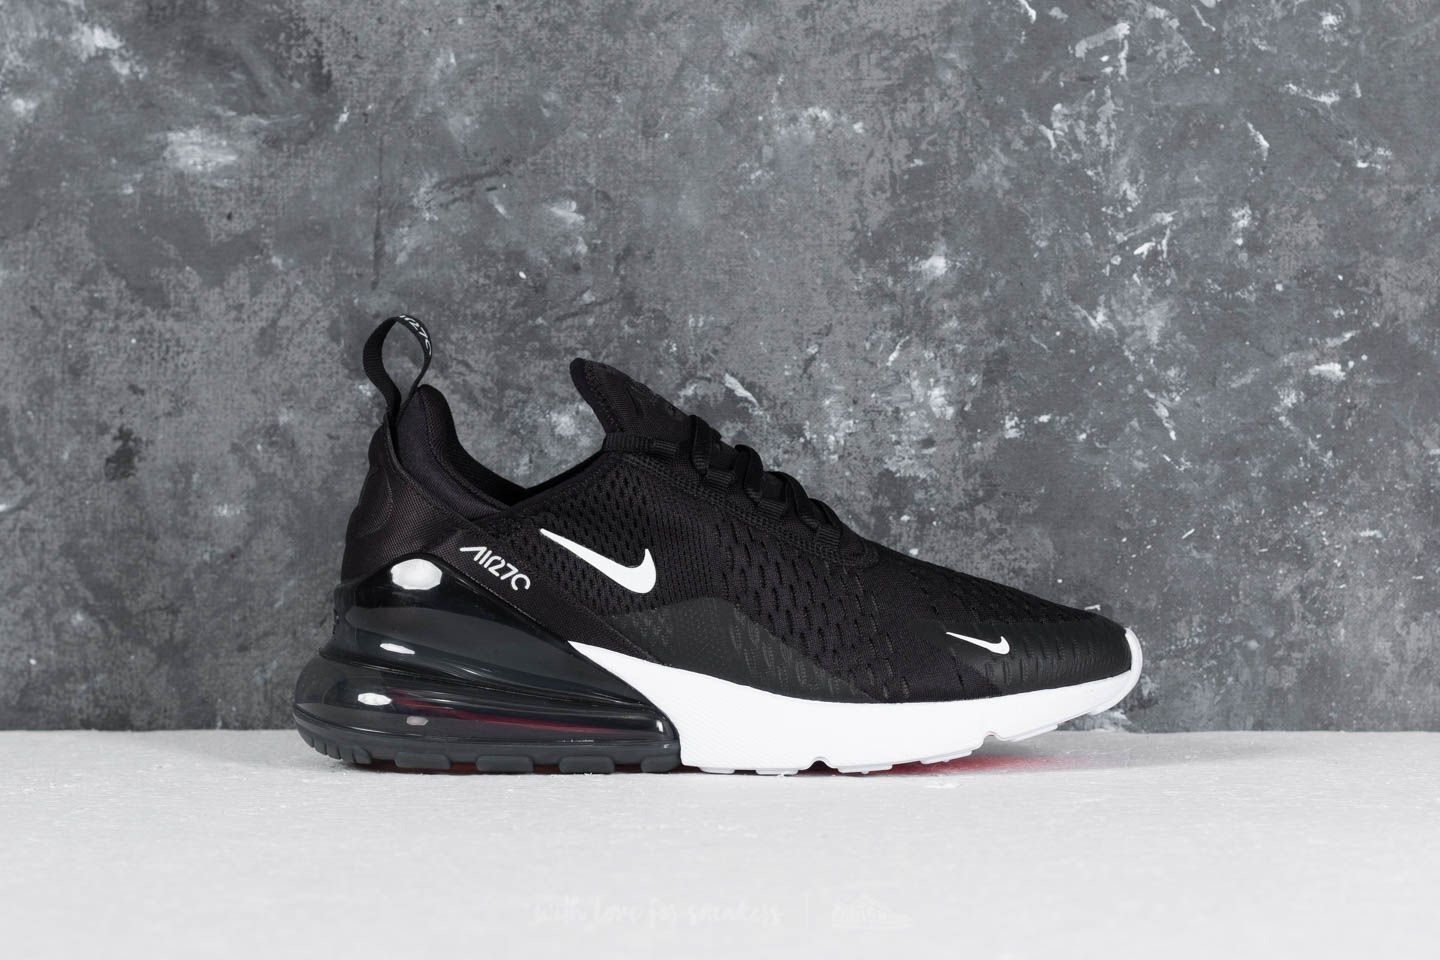 15367af489 Nike Air Max 270 Black/ Anthracite-White-Solar Red za skvelú cenu 133